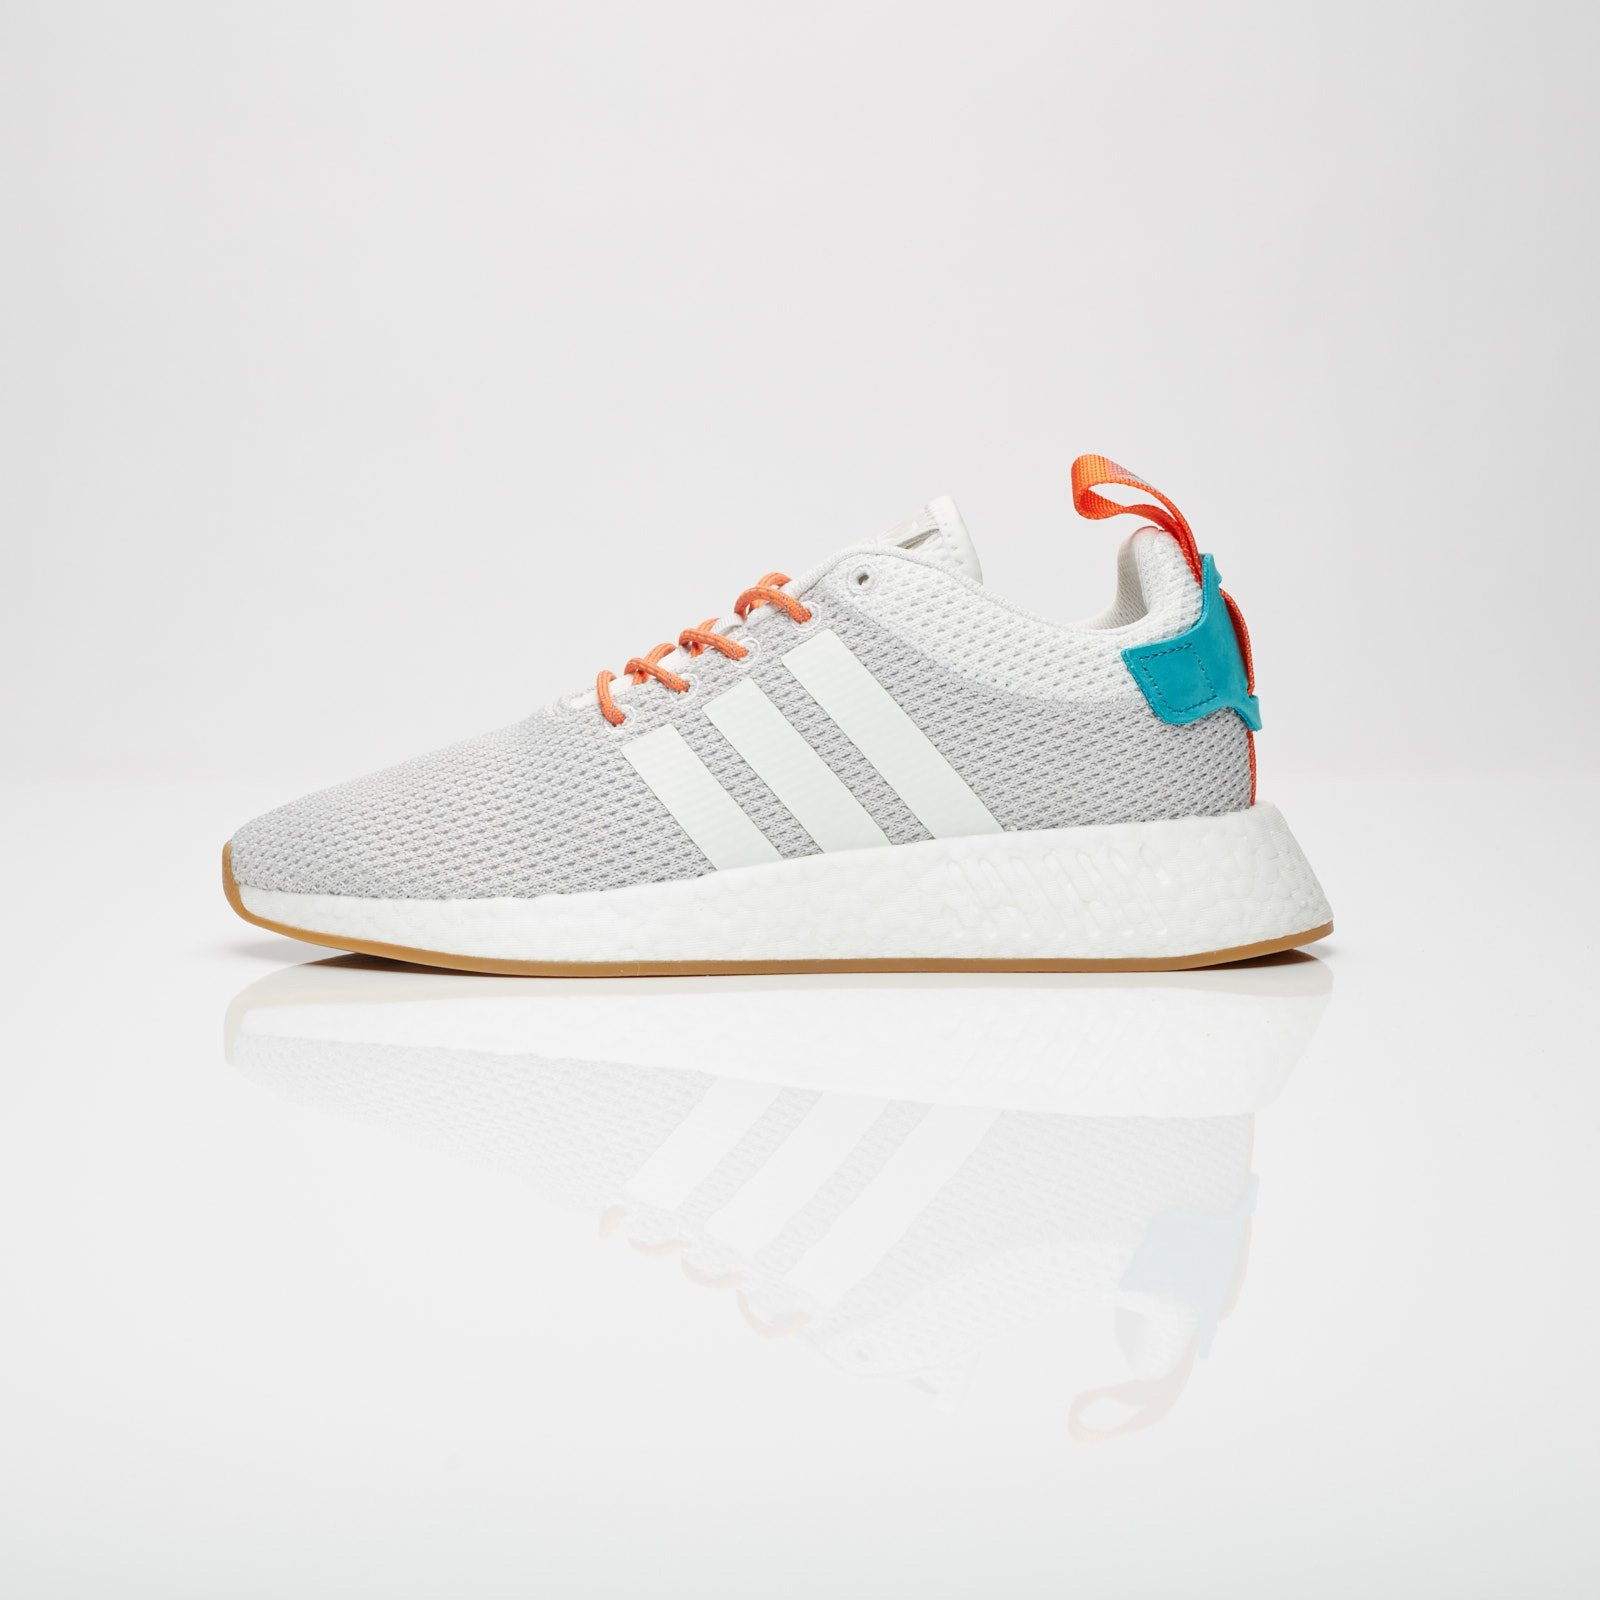 promo code eb7ba 6a647 adidas NMD R2 Summer - Cq3080 - Sneakersnstuff | sneakers ...